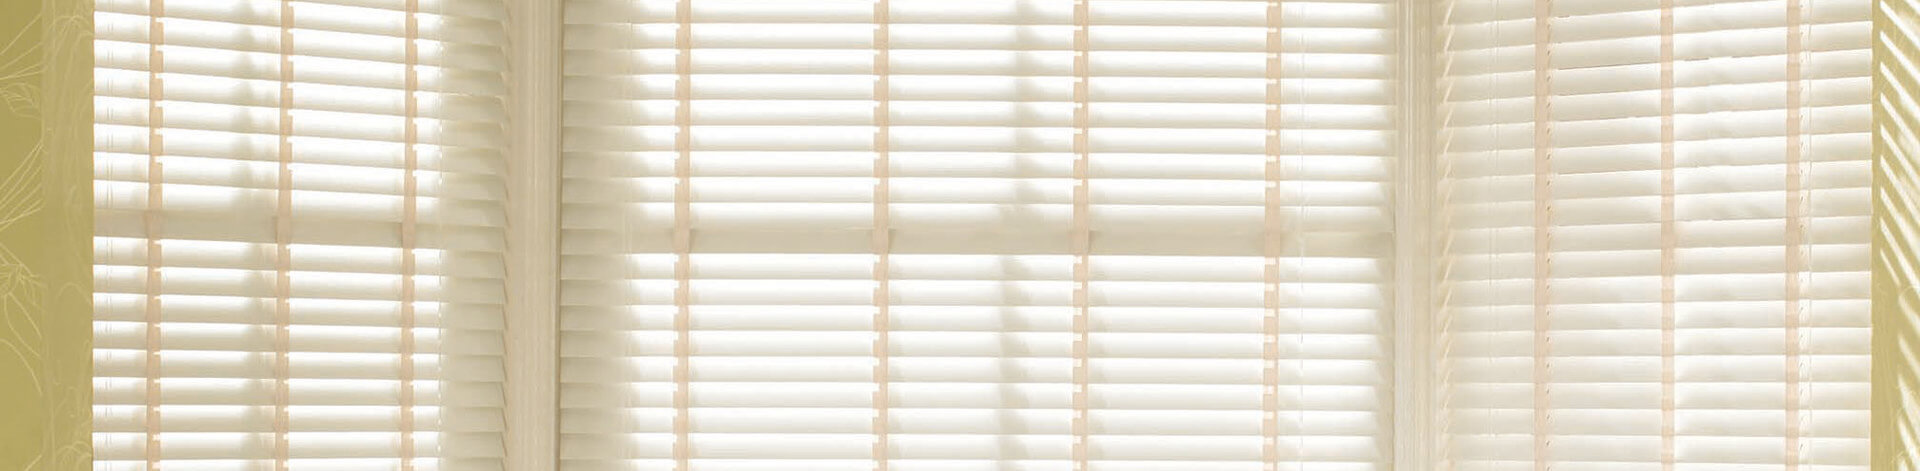 Discovery Blinds and Shutters Wooden Venetian Blinds - Sherwood Chalk White